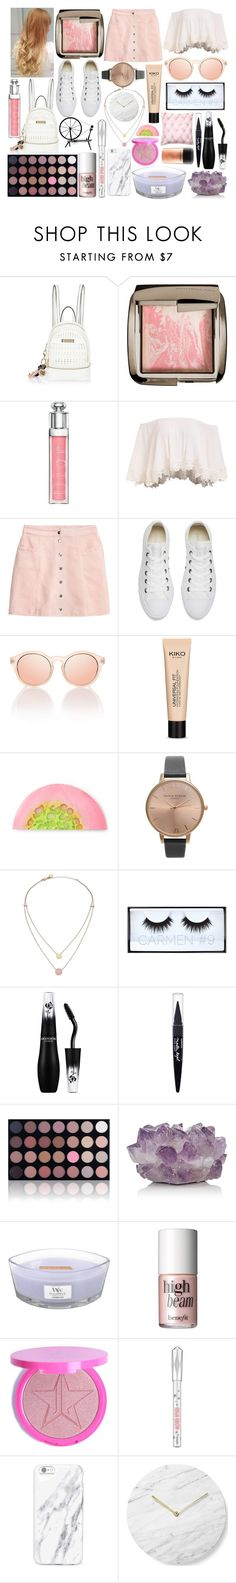 """Modern Aurora"" by gigi-rose113 on Polyvore featuring River Island, Hourglass Cosmetics, Christian Dior, Converse, Olivia Burton, Michael Kors, Huda Beauty, Lancôme, Maybelline and Shany"